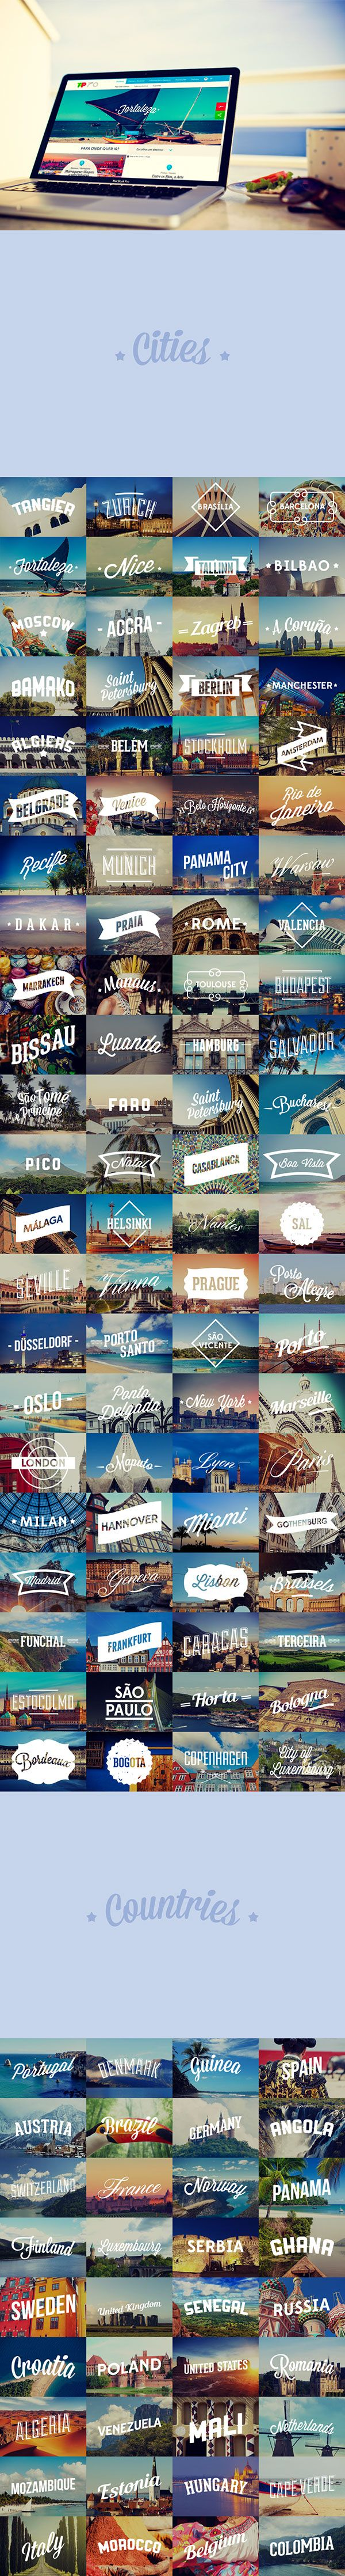 FlyTAP is Portugal's main airline company and this is a project that I developed for FlyTAP Destinations website.  It consisted on designing the images (banners, thumbnails, etc) for all the destinations that FlyTAP operates.  The concept was to choose a typo and work it to represent the mood of the country or city, and then make it to be part of the destination image.